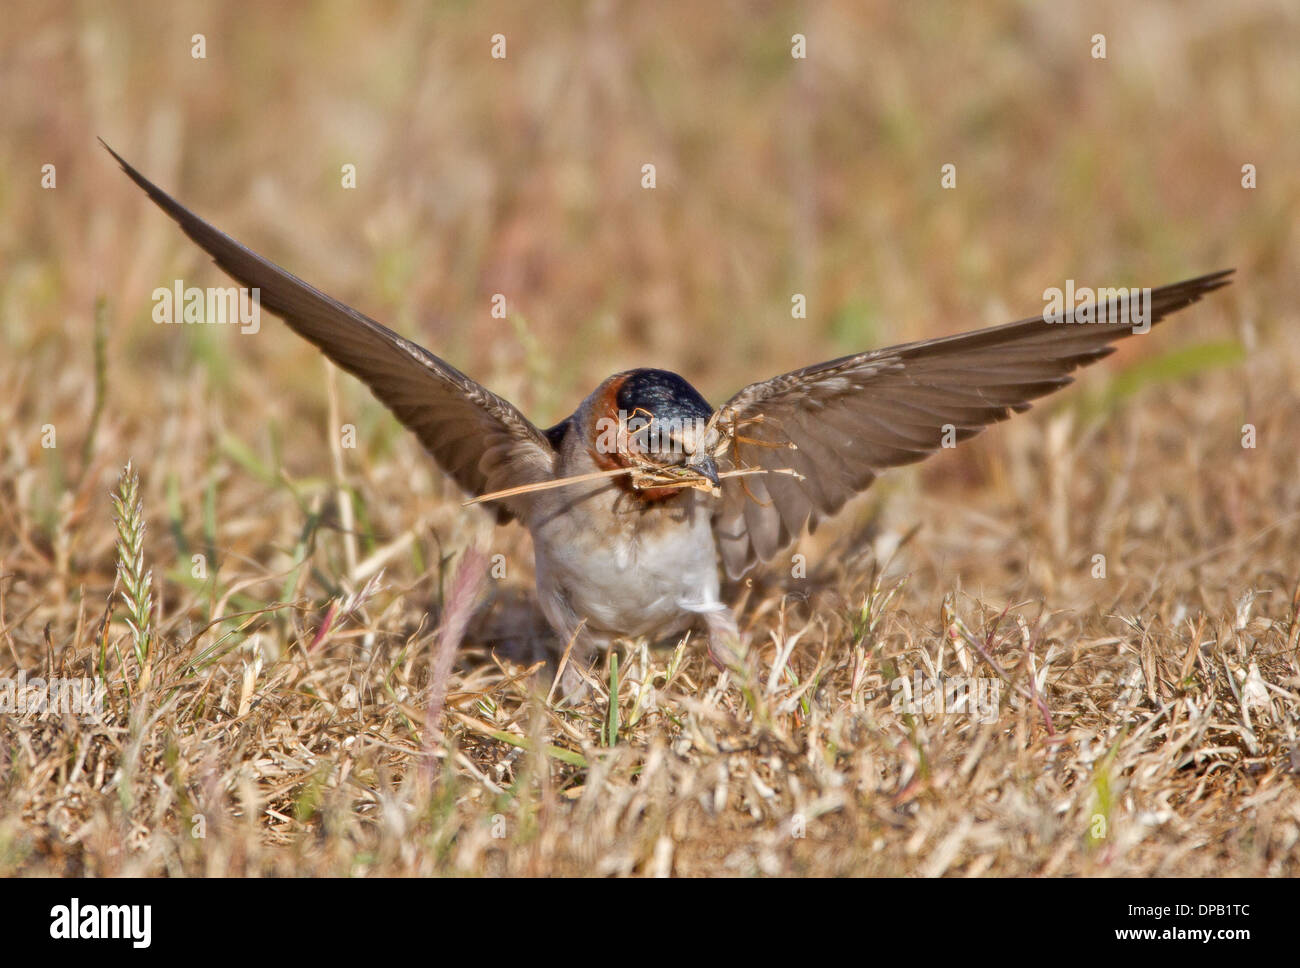 Cliff Swallow Gathering Grass for Nesting Material - Stock Image